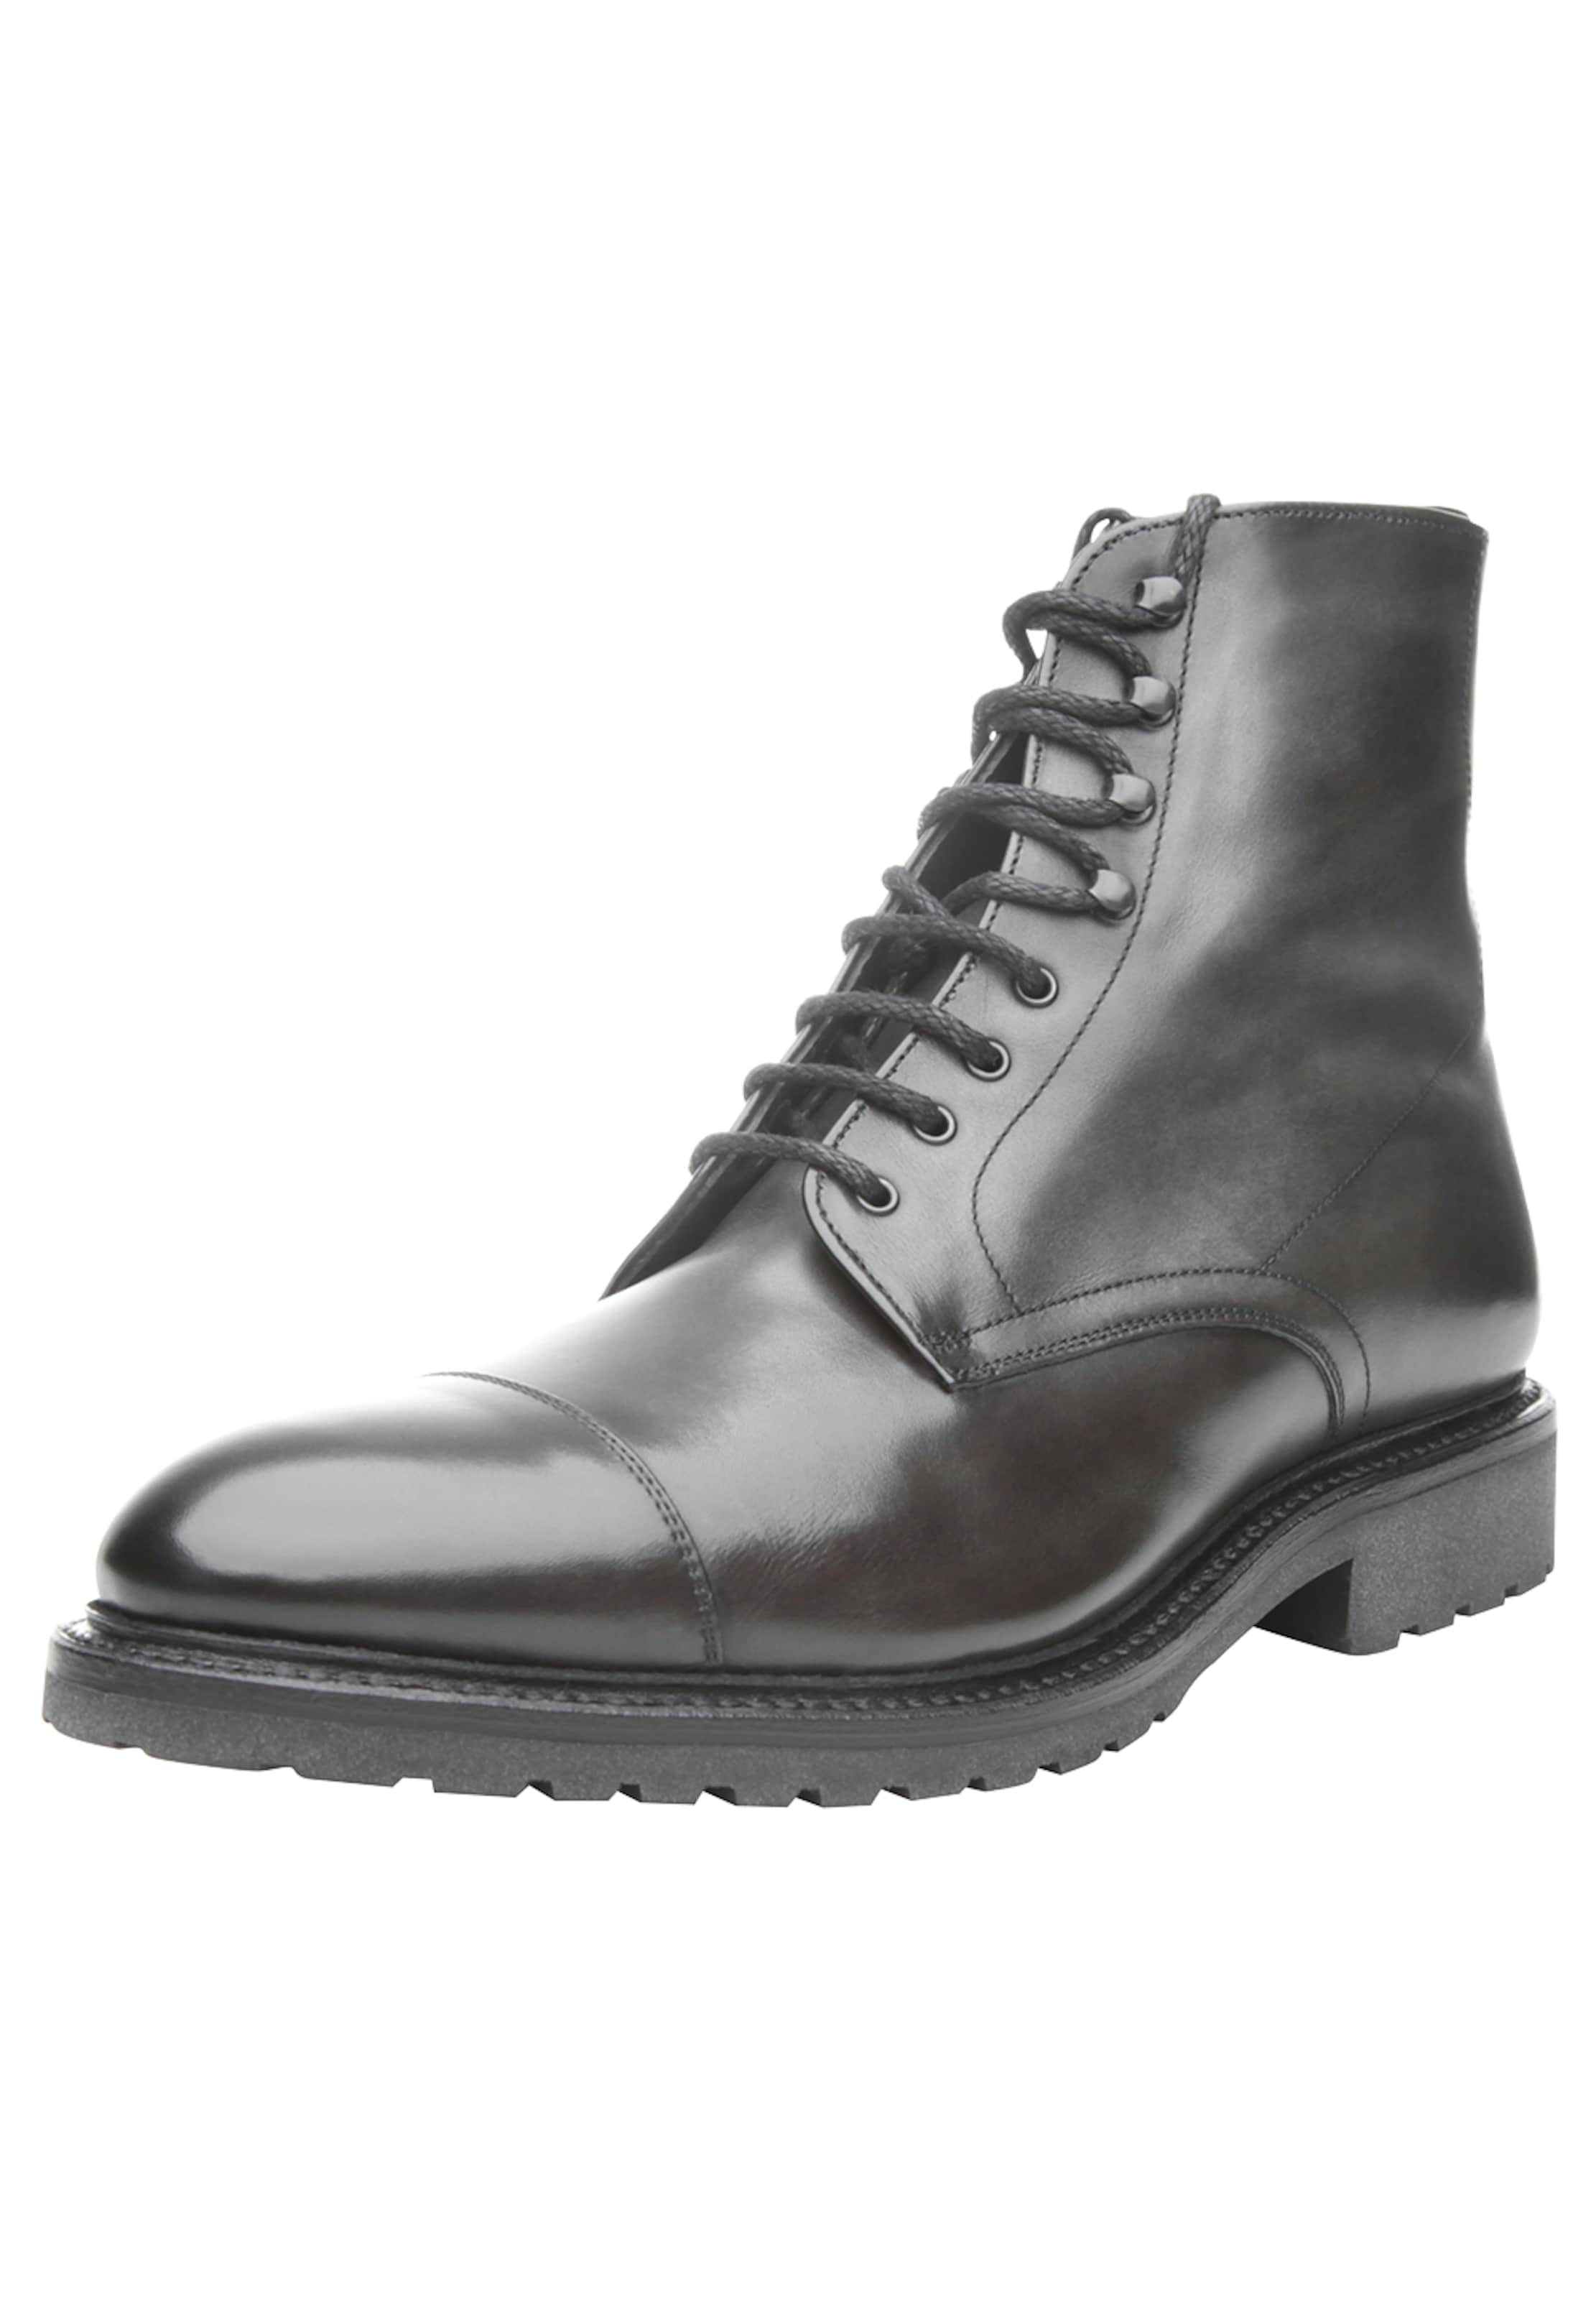 SHOEPASSION 678 | Winterboots  No. 678 SHOEPASSION 66ce31